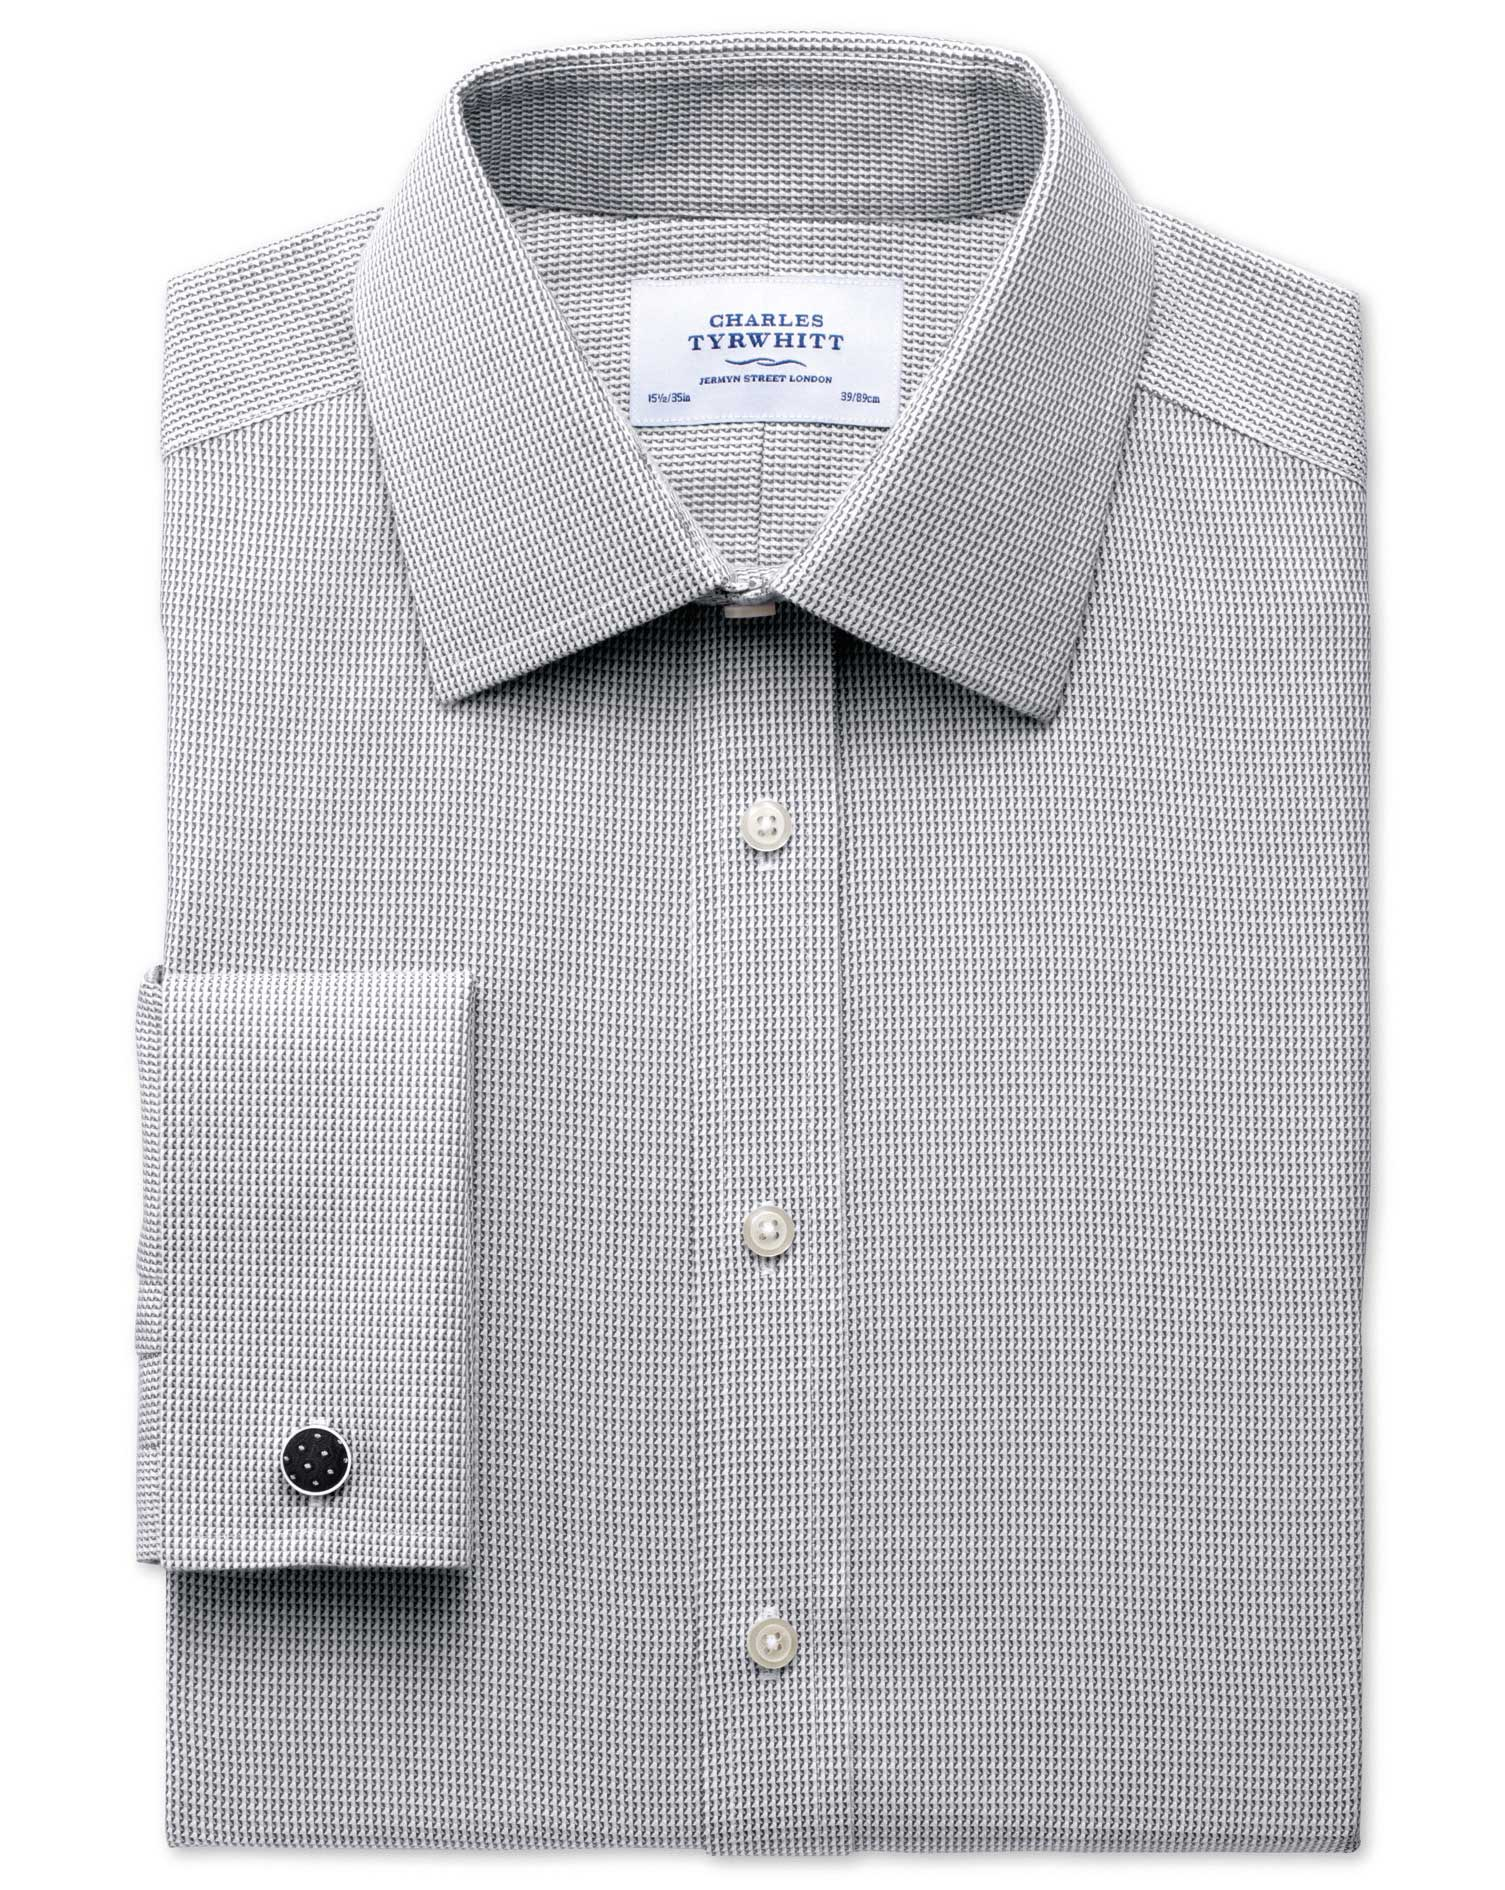 Classic Fit Non-Iron Grey Cotton Formal Shirt Single Cuff Size 15/33 by Charles Tyrwhitt